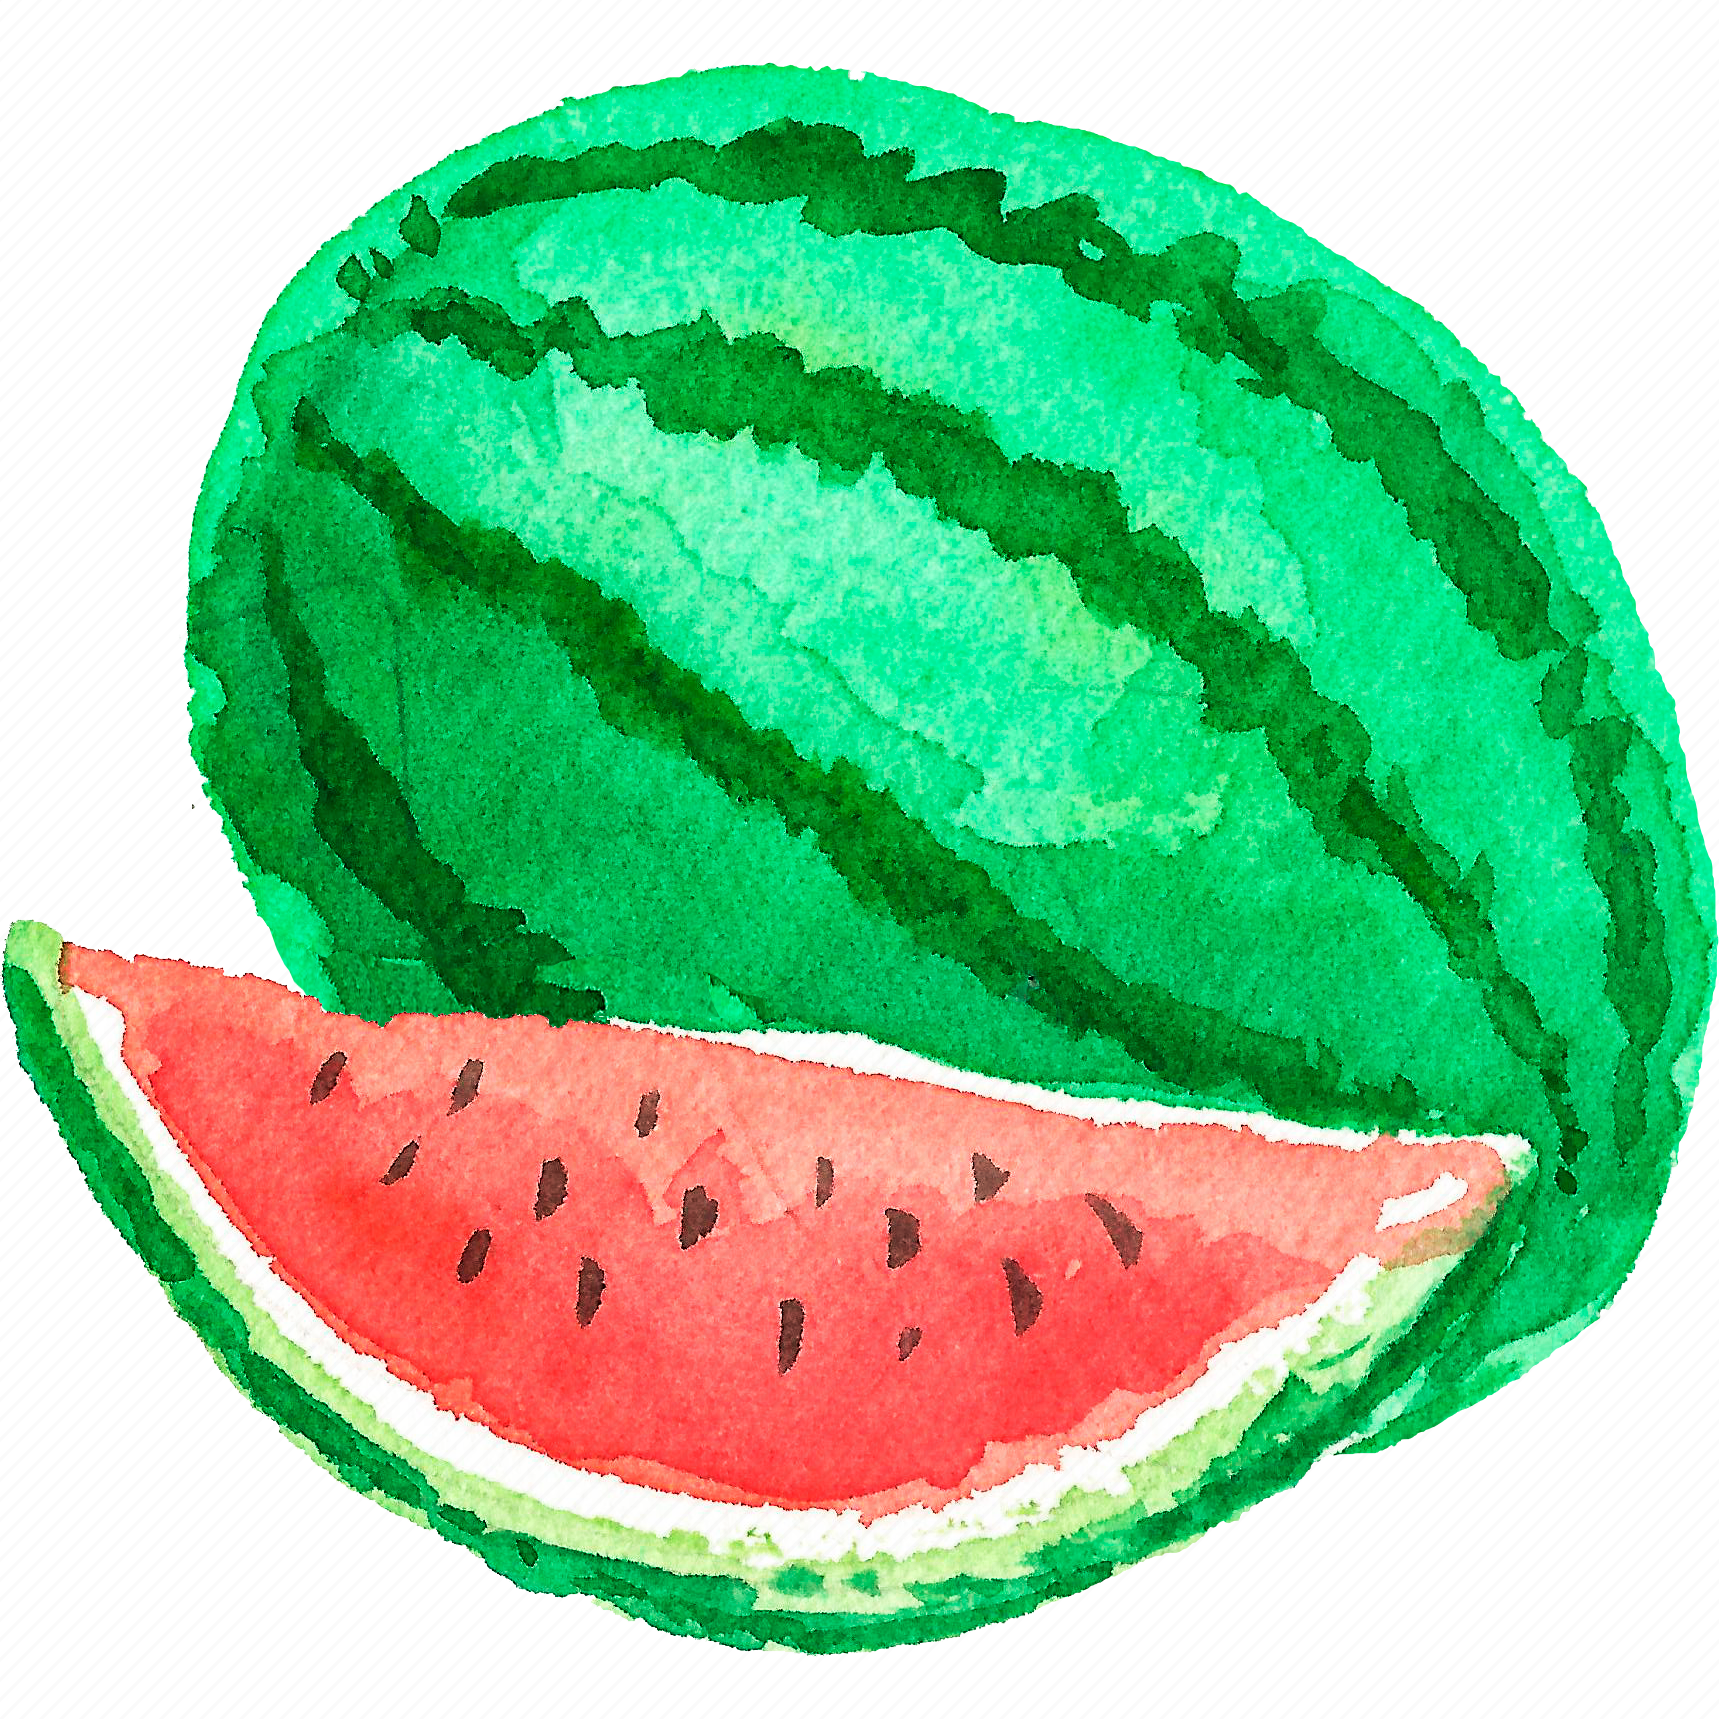 cuisine, food, fruit, fruits, watercolor, watercolors, watermelon icon